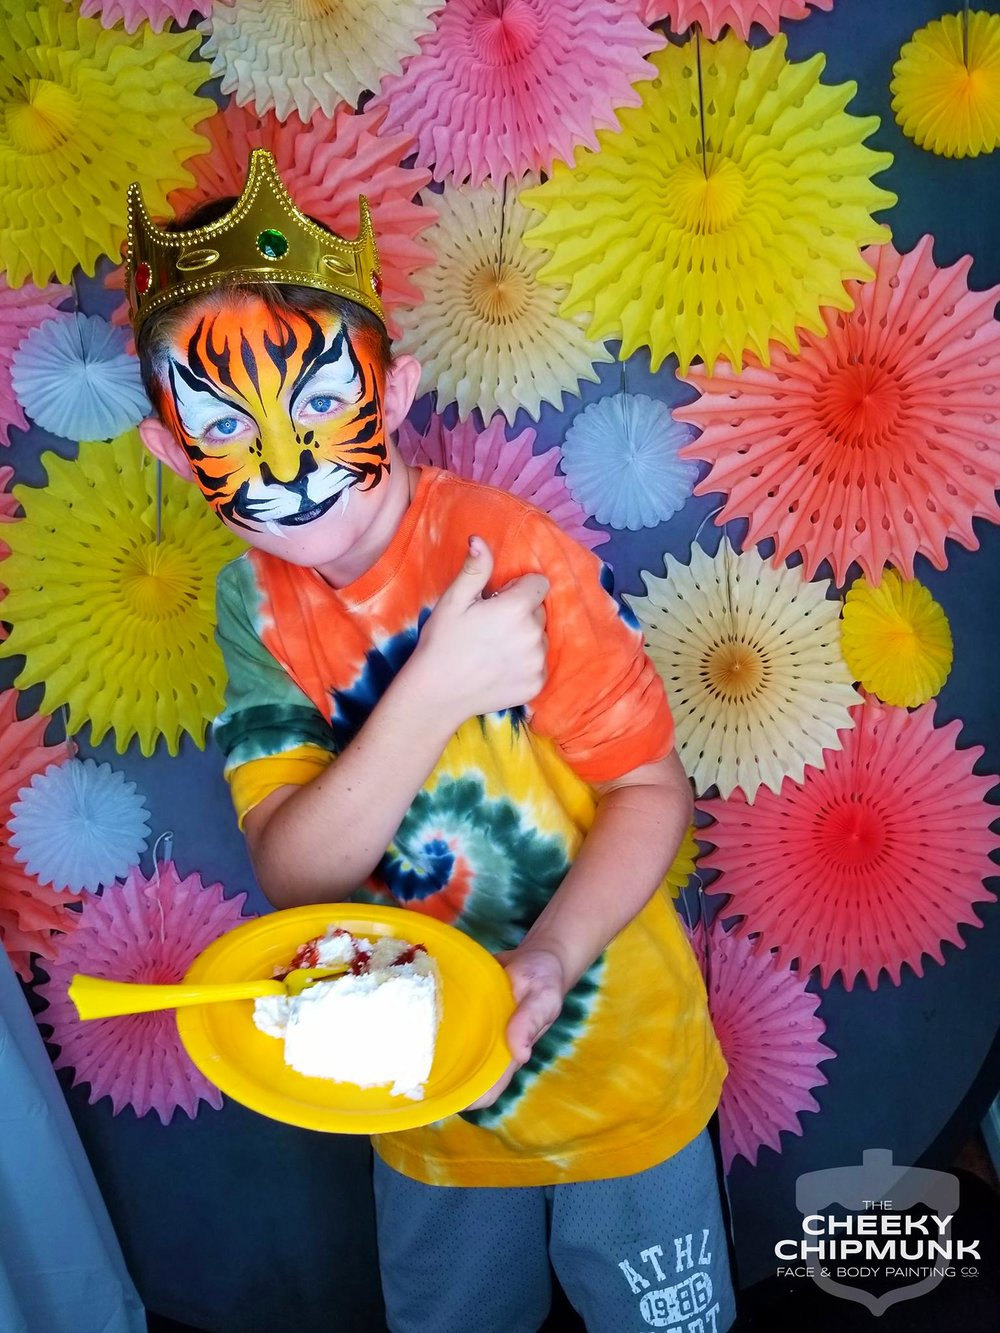 shane-tiger-birthday-cake-honeycomb-tissue-decorations-birthday-party-face-painting-lenore-koppelman-the-cheeky-chipmunk-crown-nyc.jpg